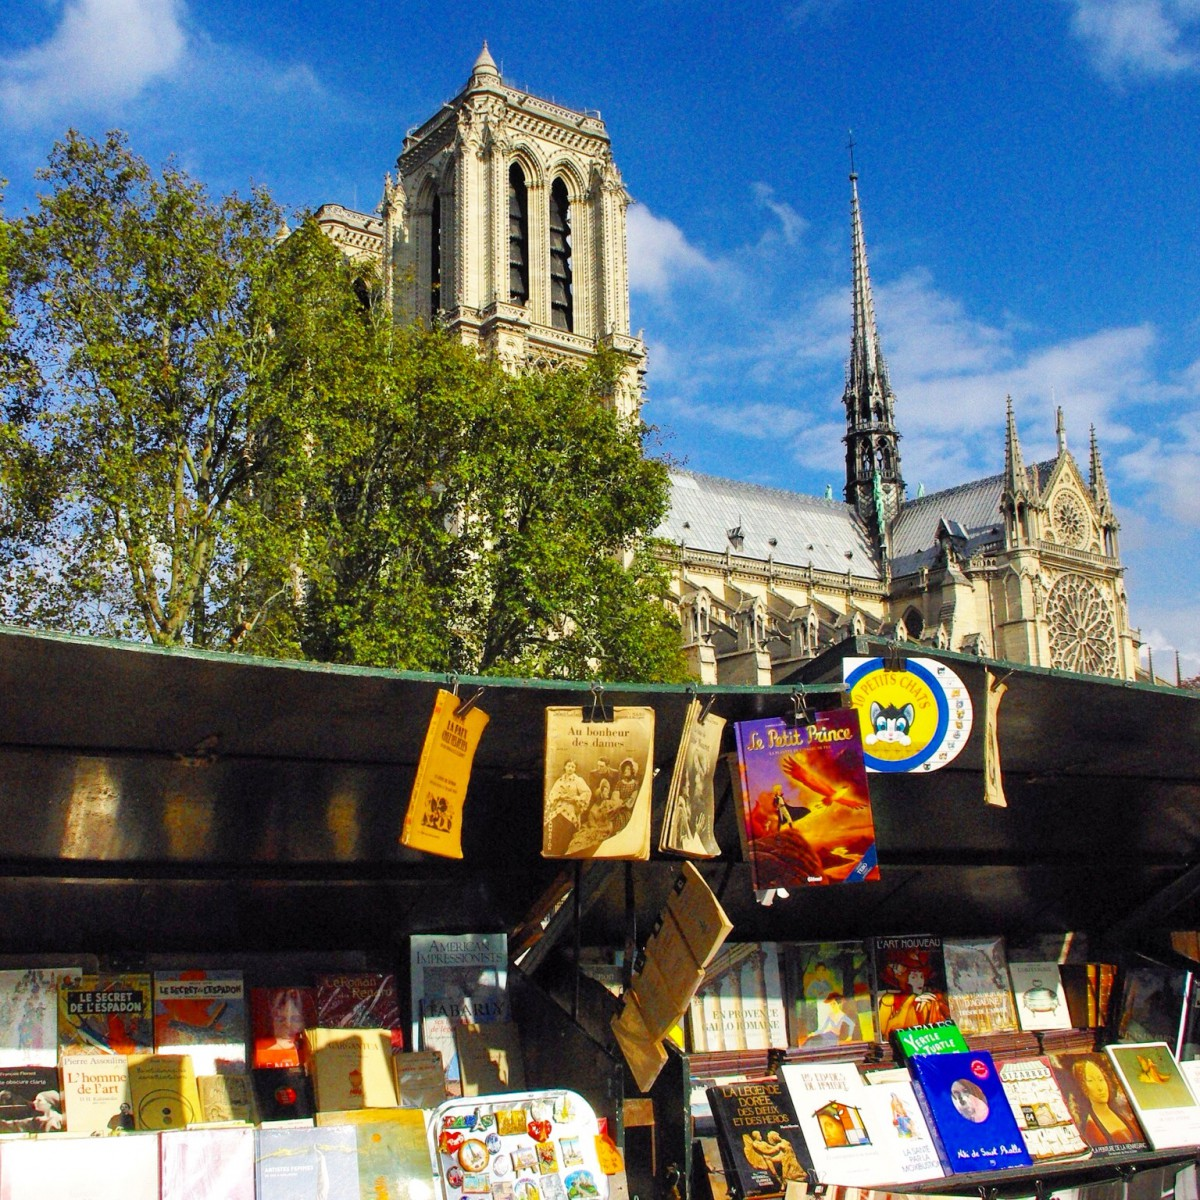 The Bouquinistes of Paris © French Moments